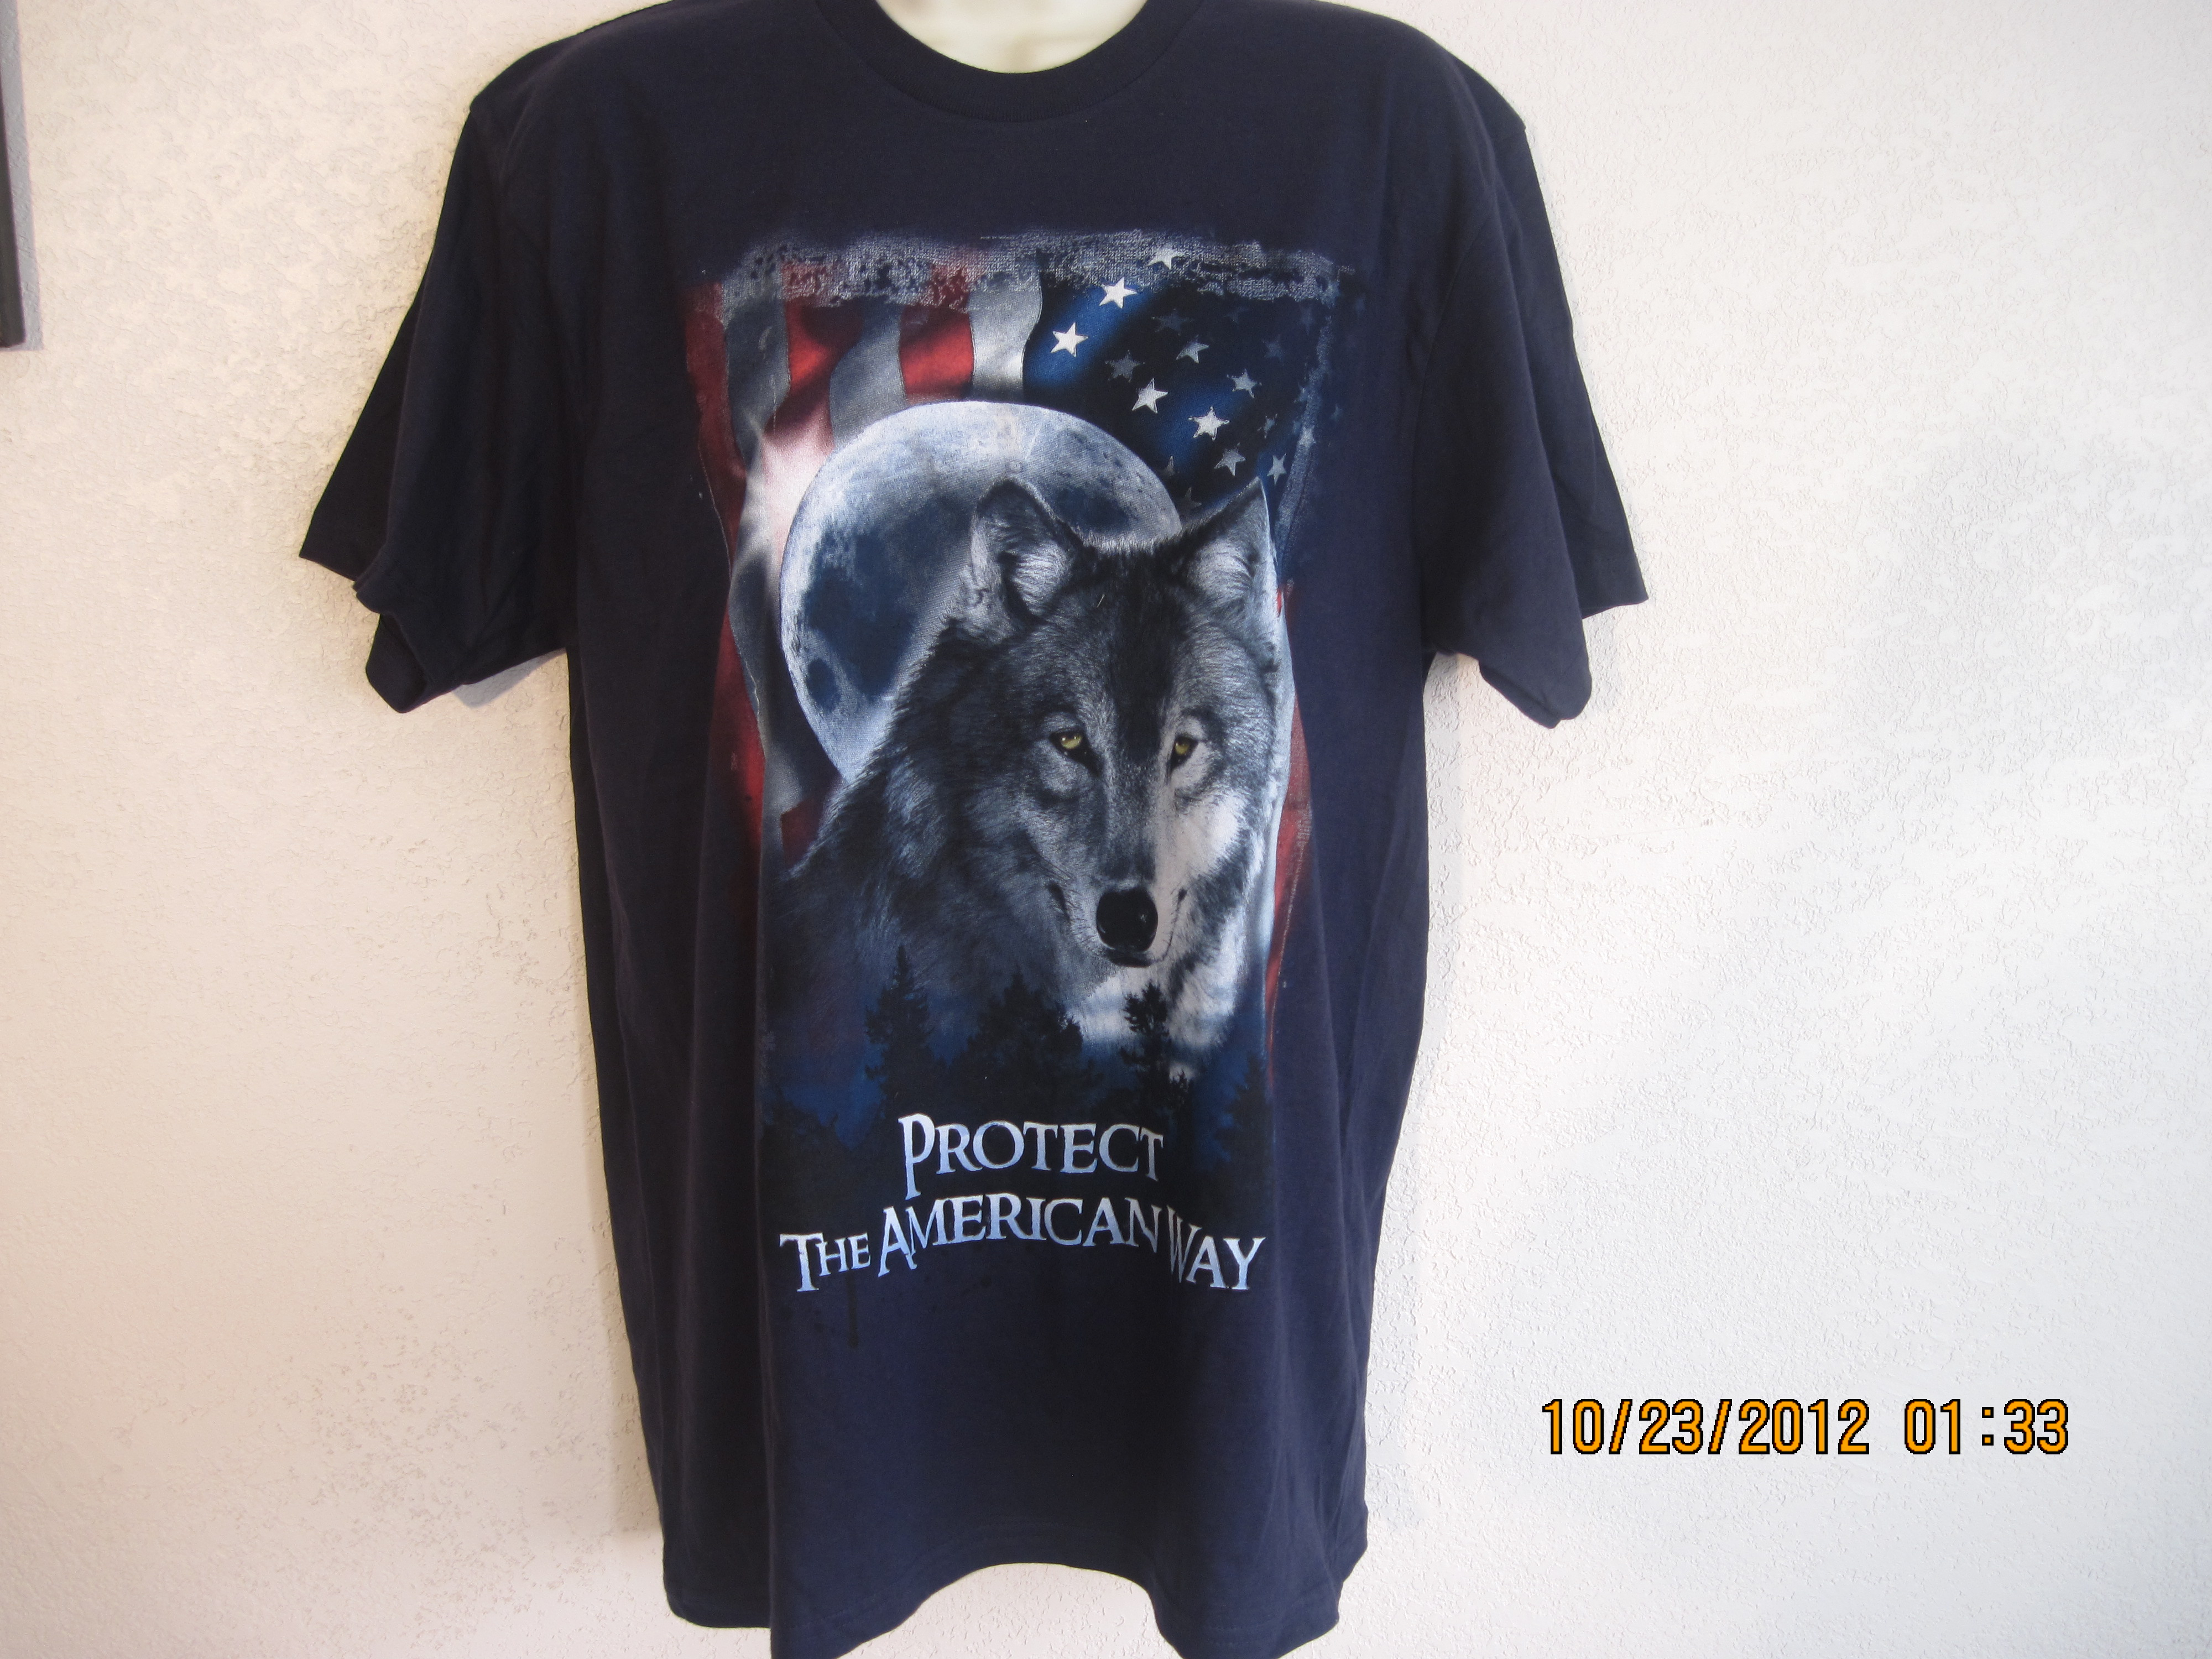 Whale By Switcher Sz M Protect The American Way T-Shirt(navy blu